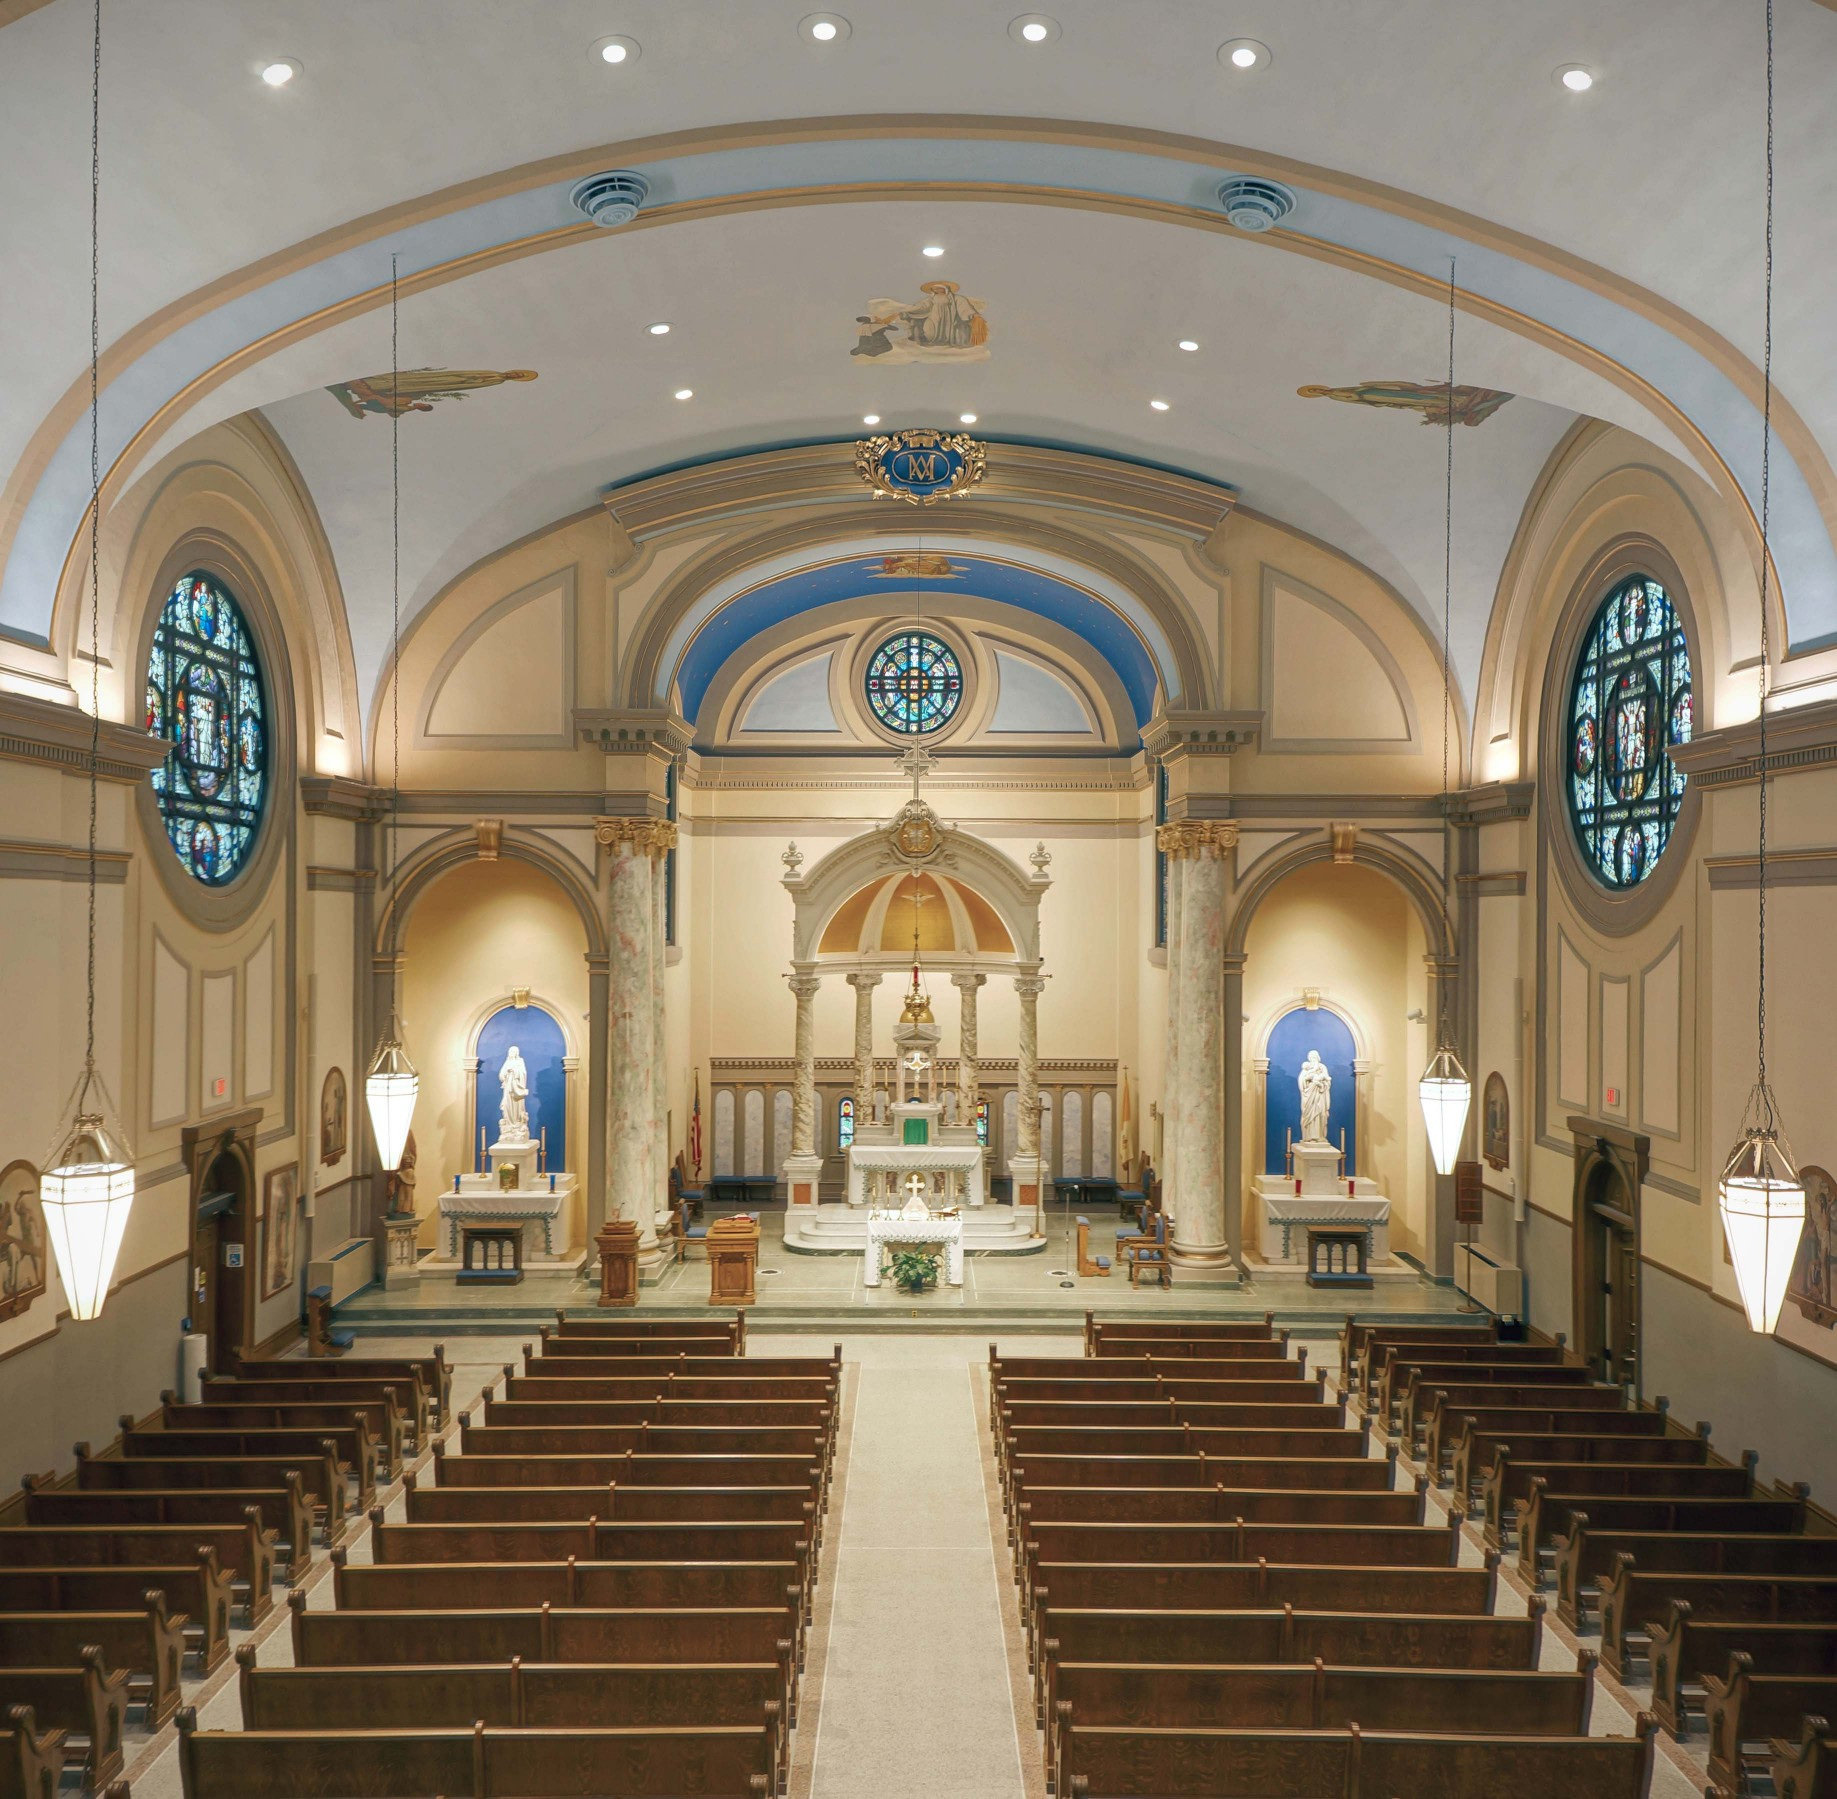 Lumenpulse's Lumentalk control technology provides a refreshing lighting scheme worthy of this holy place, all the while protecting its architectural significance and structural integrity thanks to no additional controls wiring.  – Brian Gunning